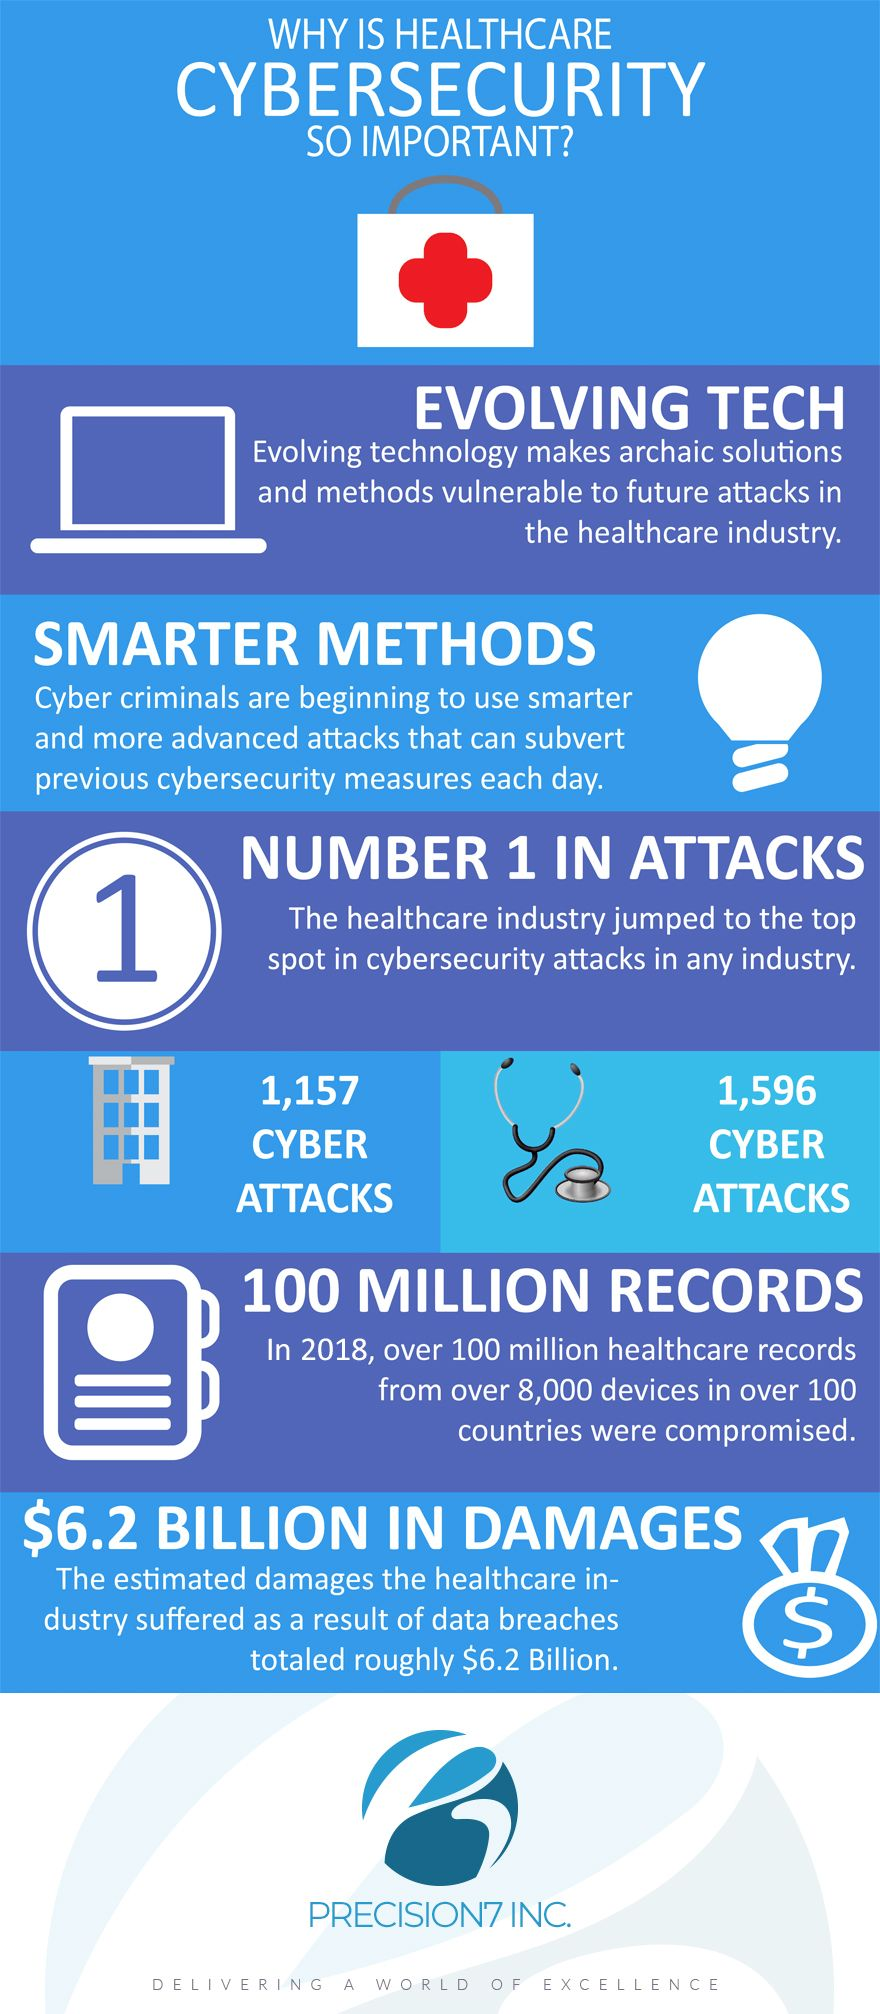 Why Is Cyber Security So Important To Healthcare Cyber Security Health Care Cyber